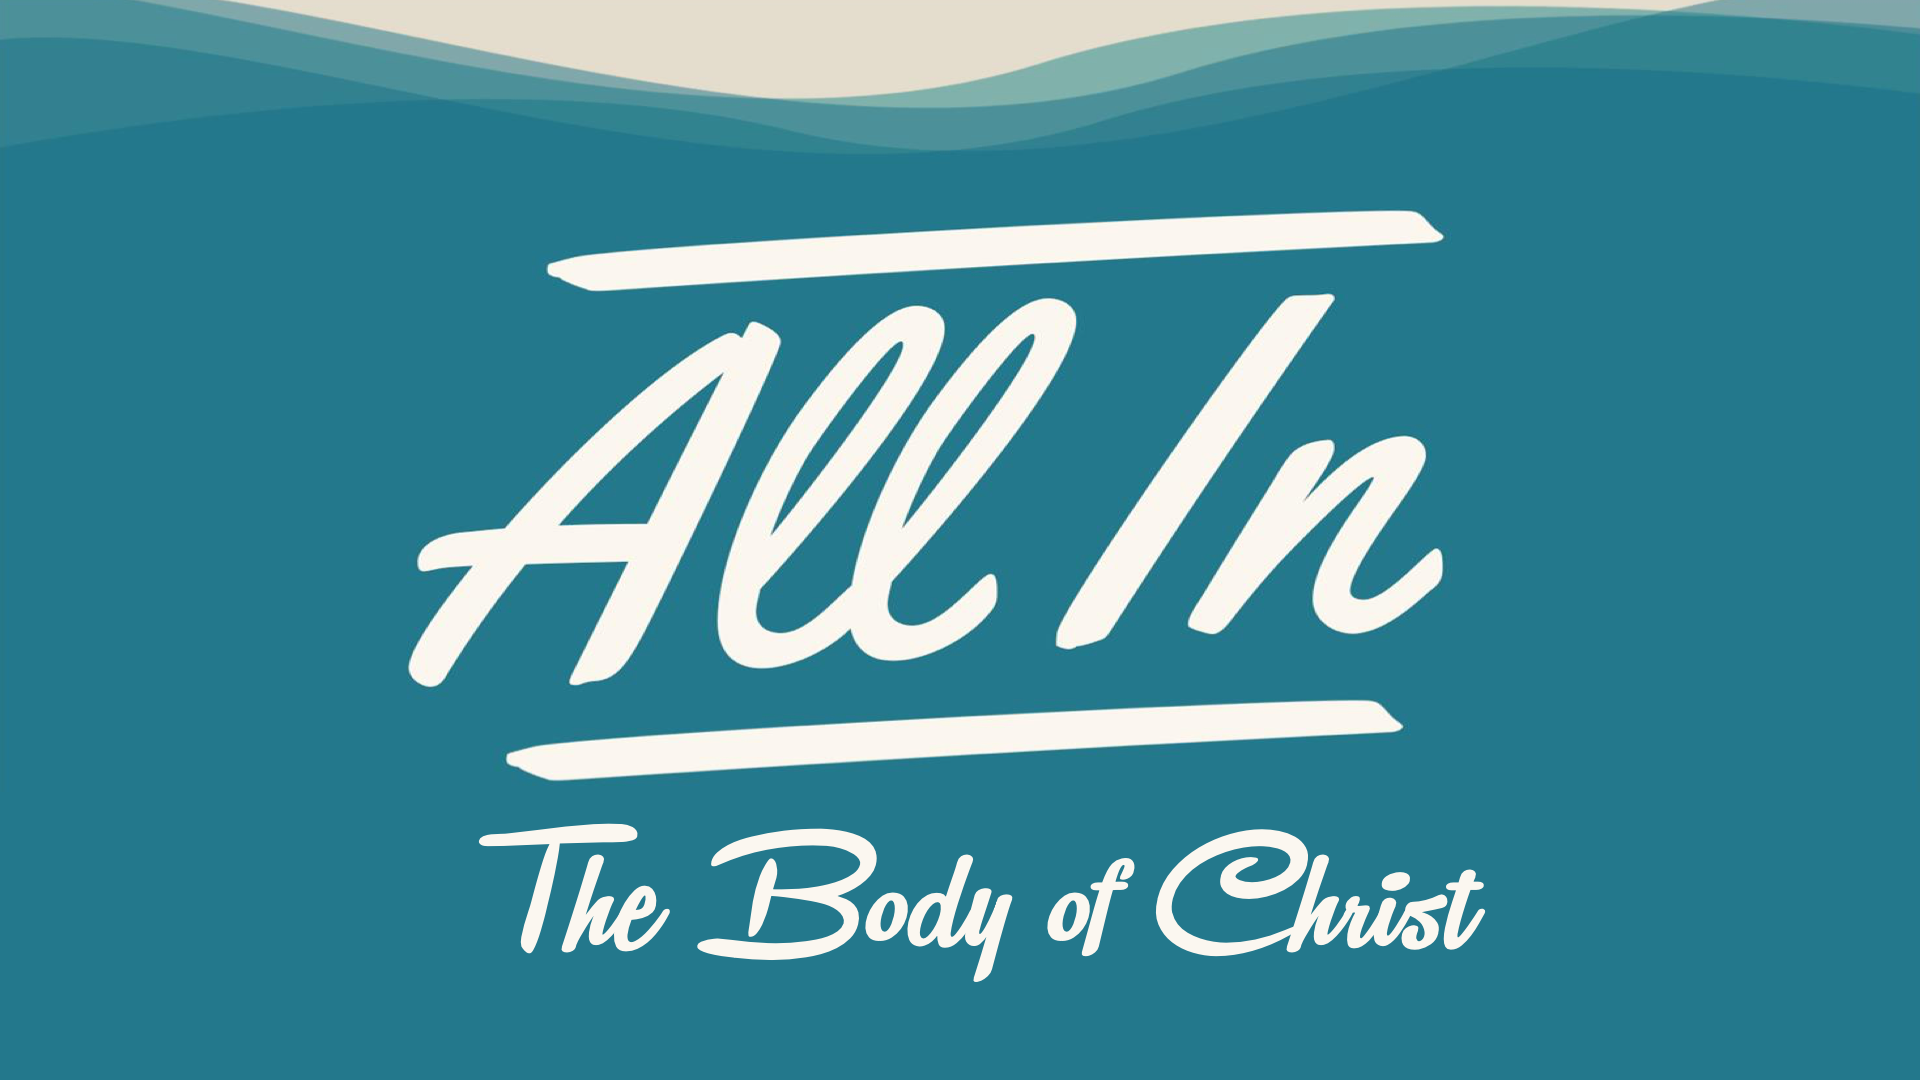 All In The Body of Christ